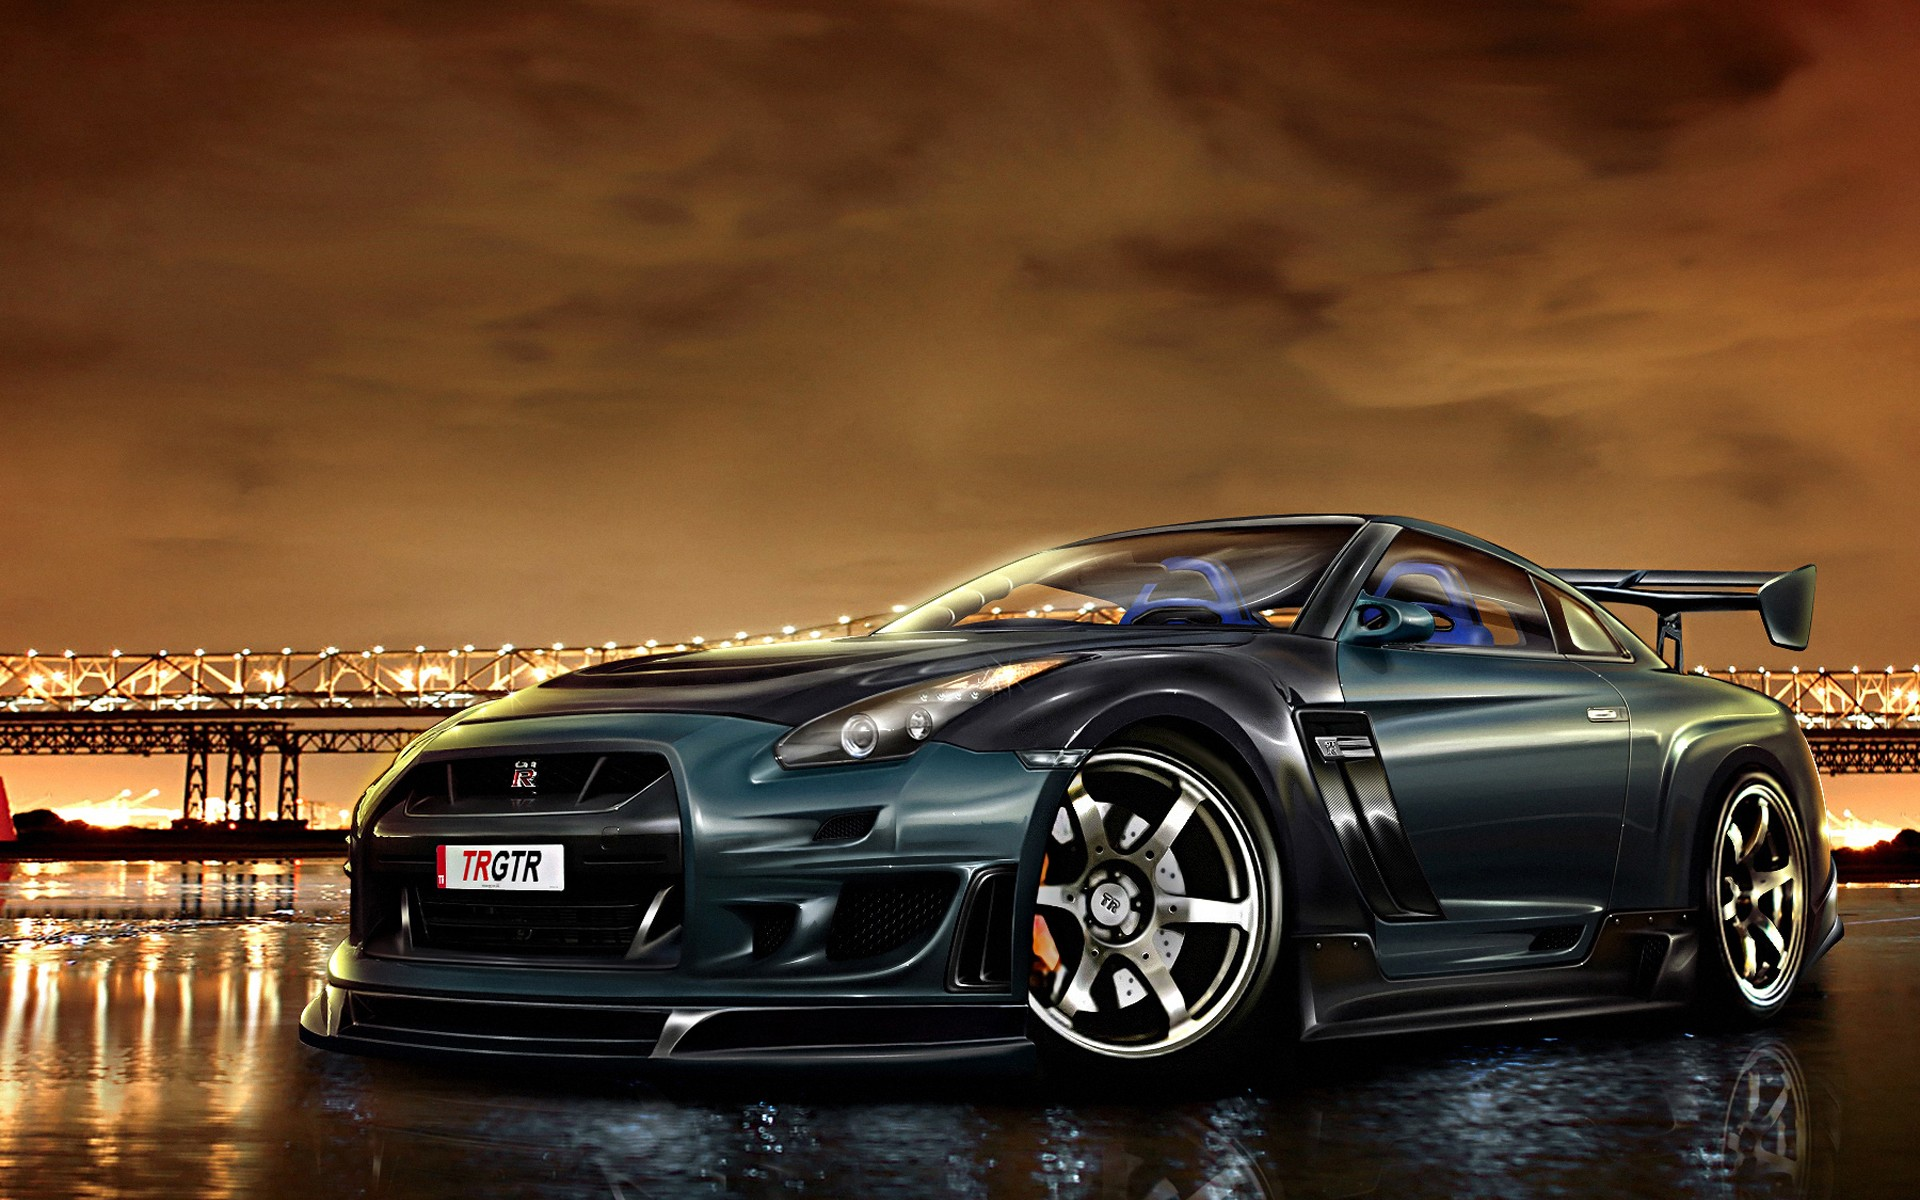 Cars Supercars Wallpaper 1920x1200 Cars Supercars Tuning Nissan 1920x1200